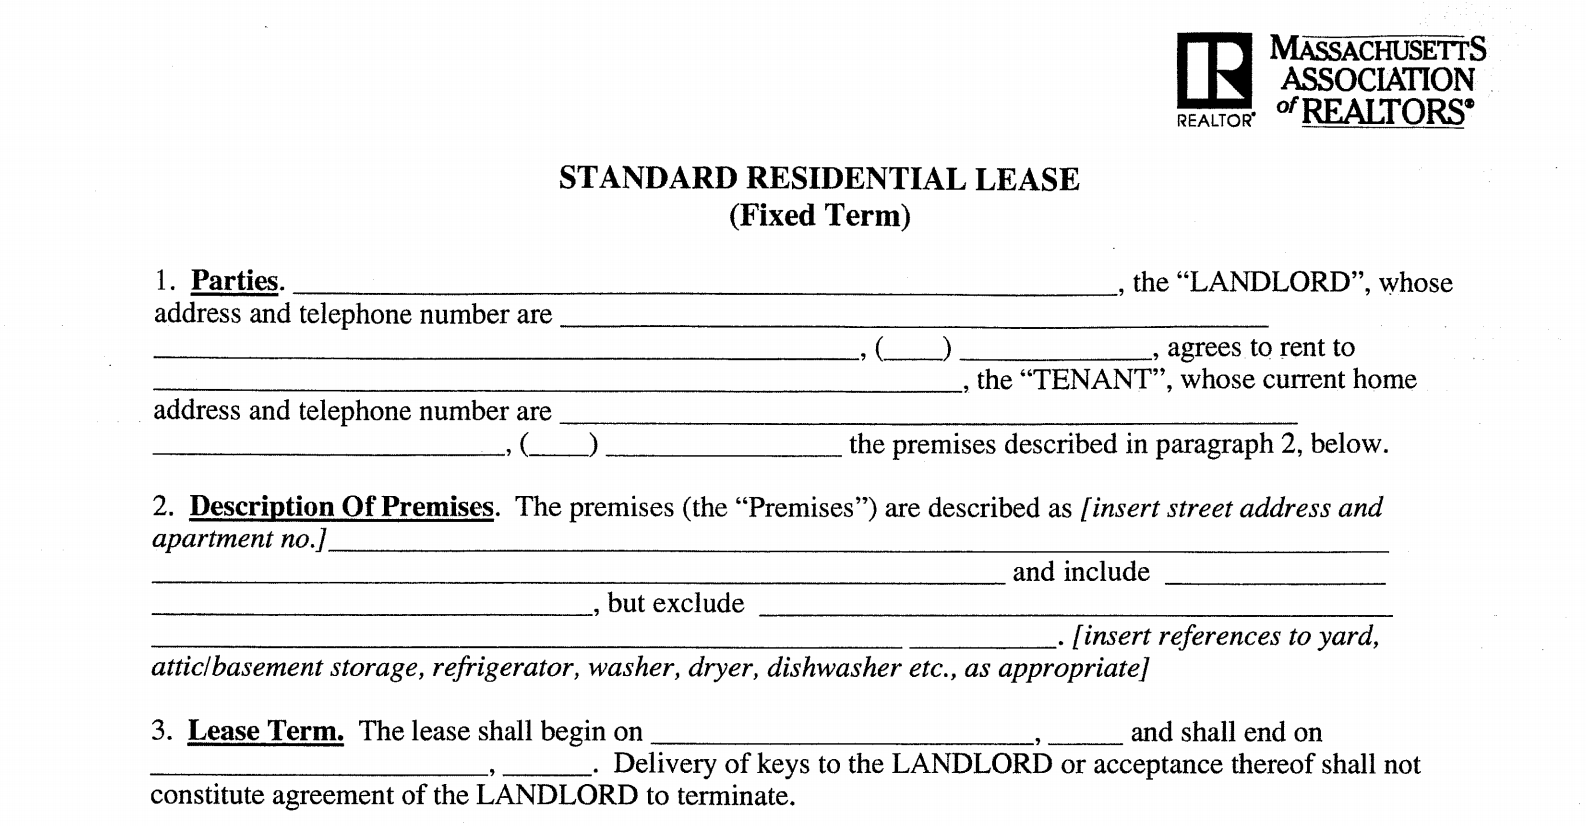 When Should Ma First Time Home Buyers Tell Landlords They Re